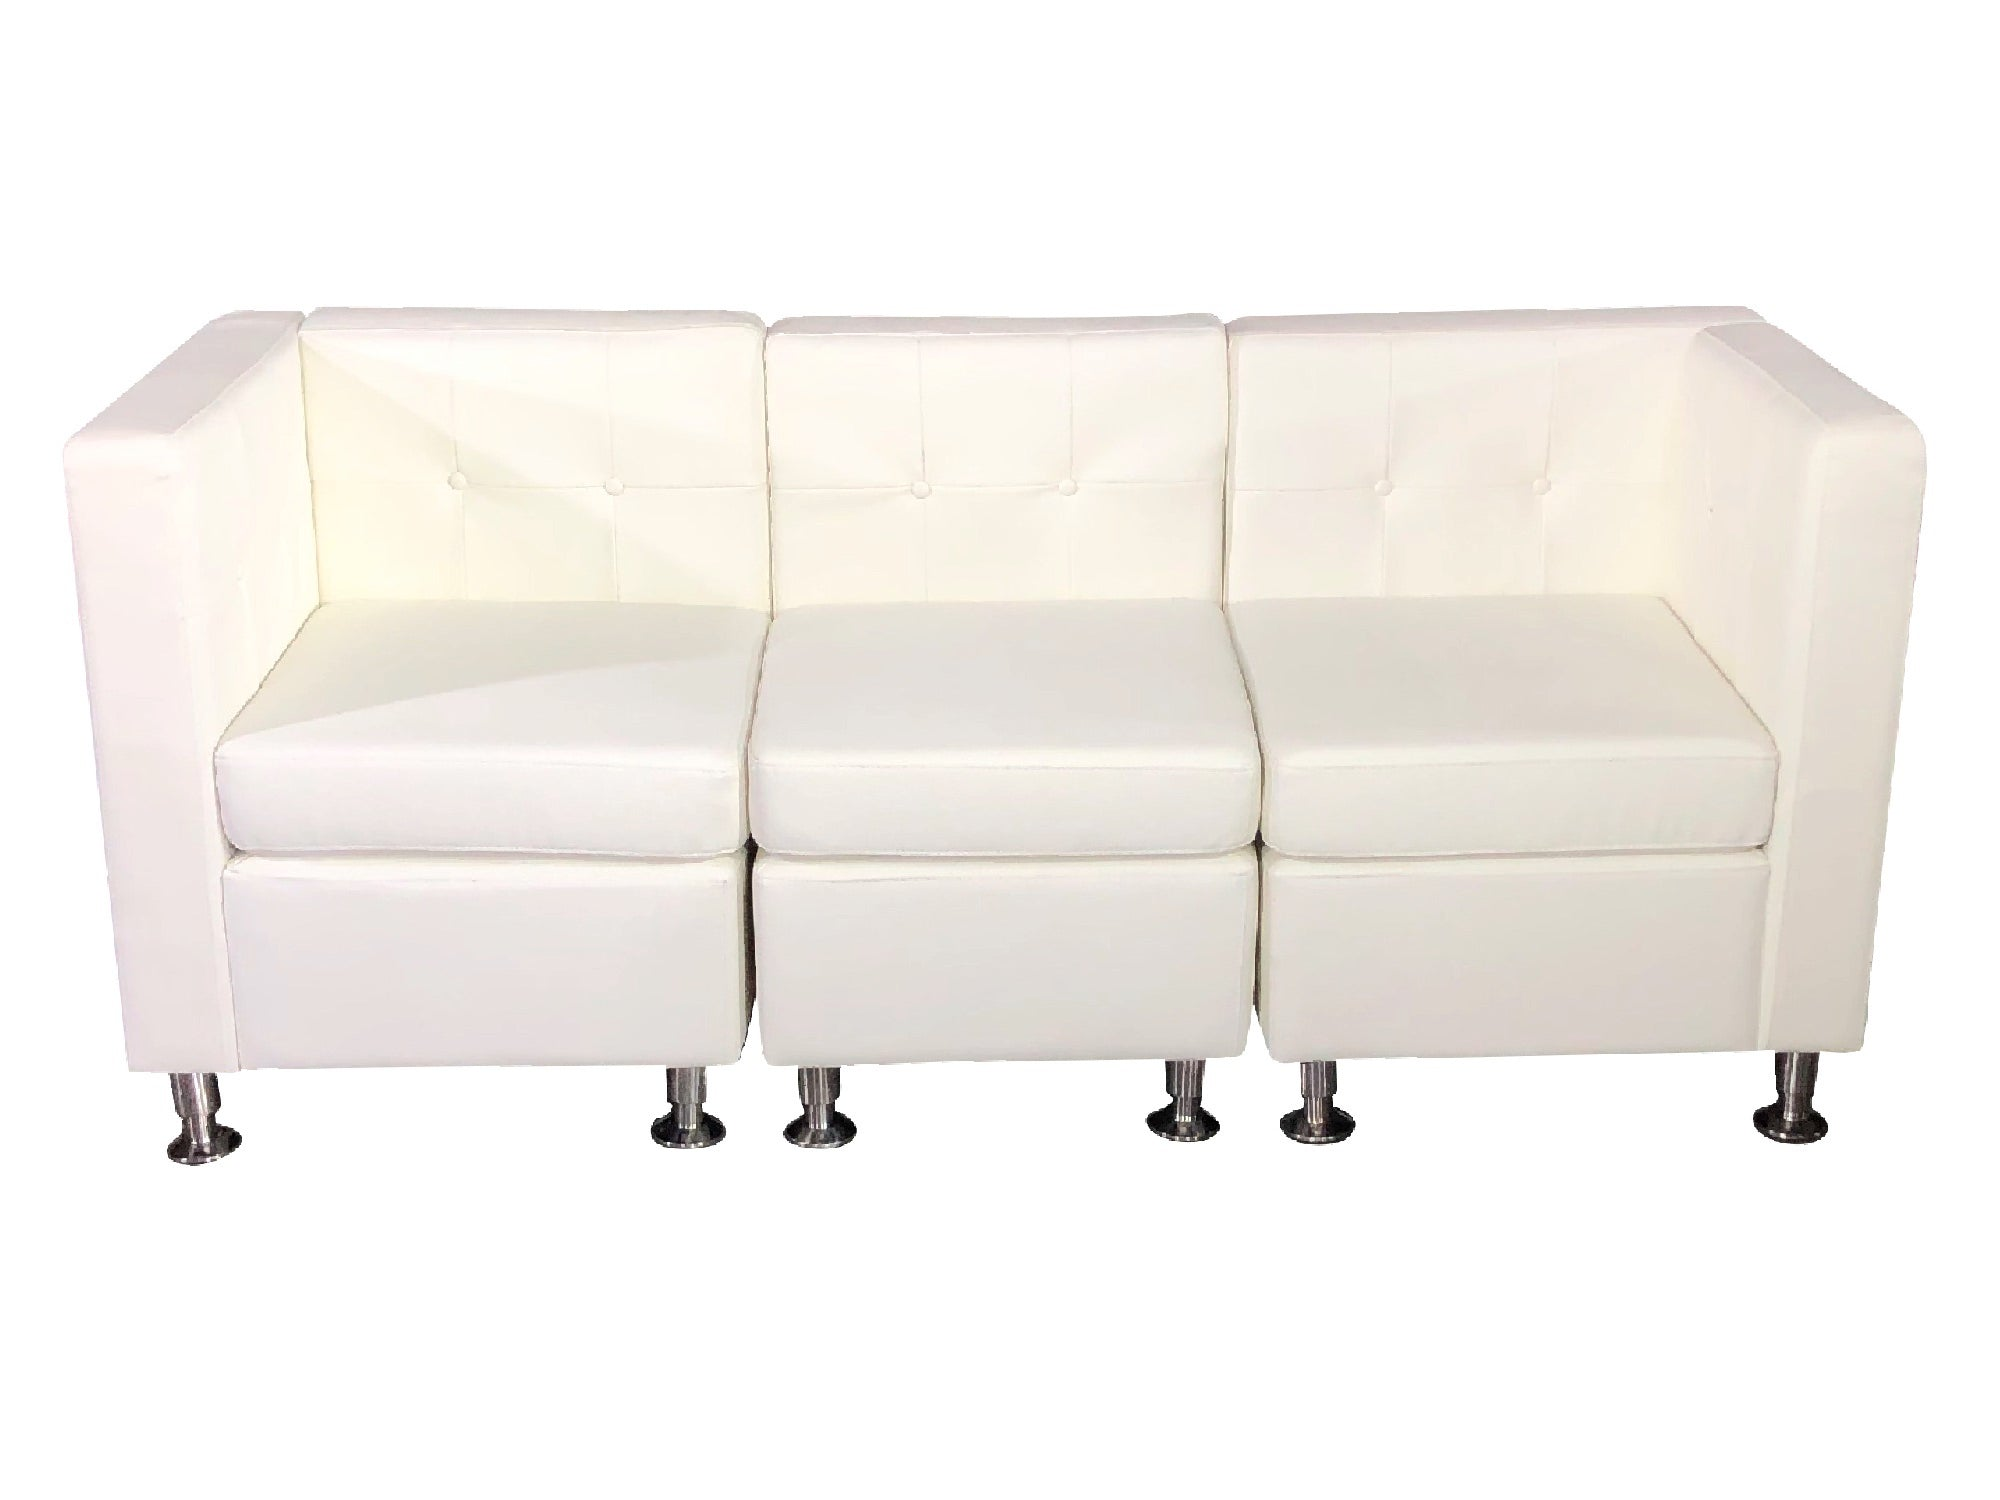 CLUB 3PC SOFA - WHITE